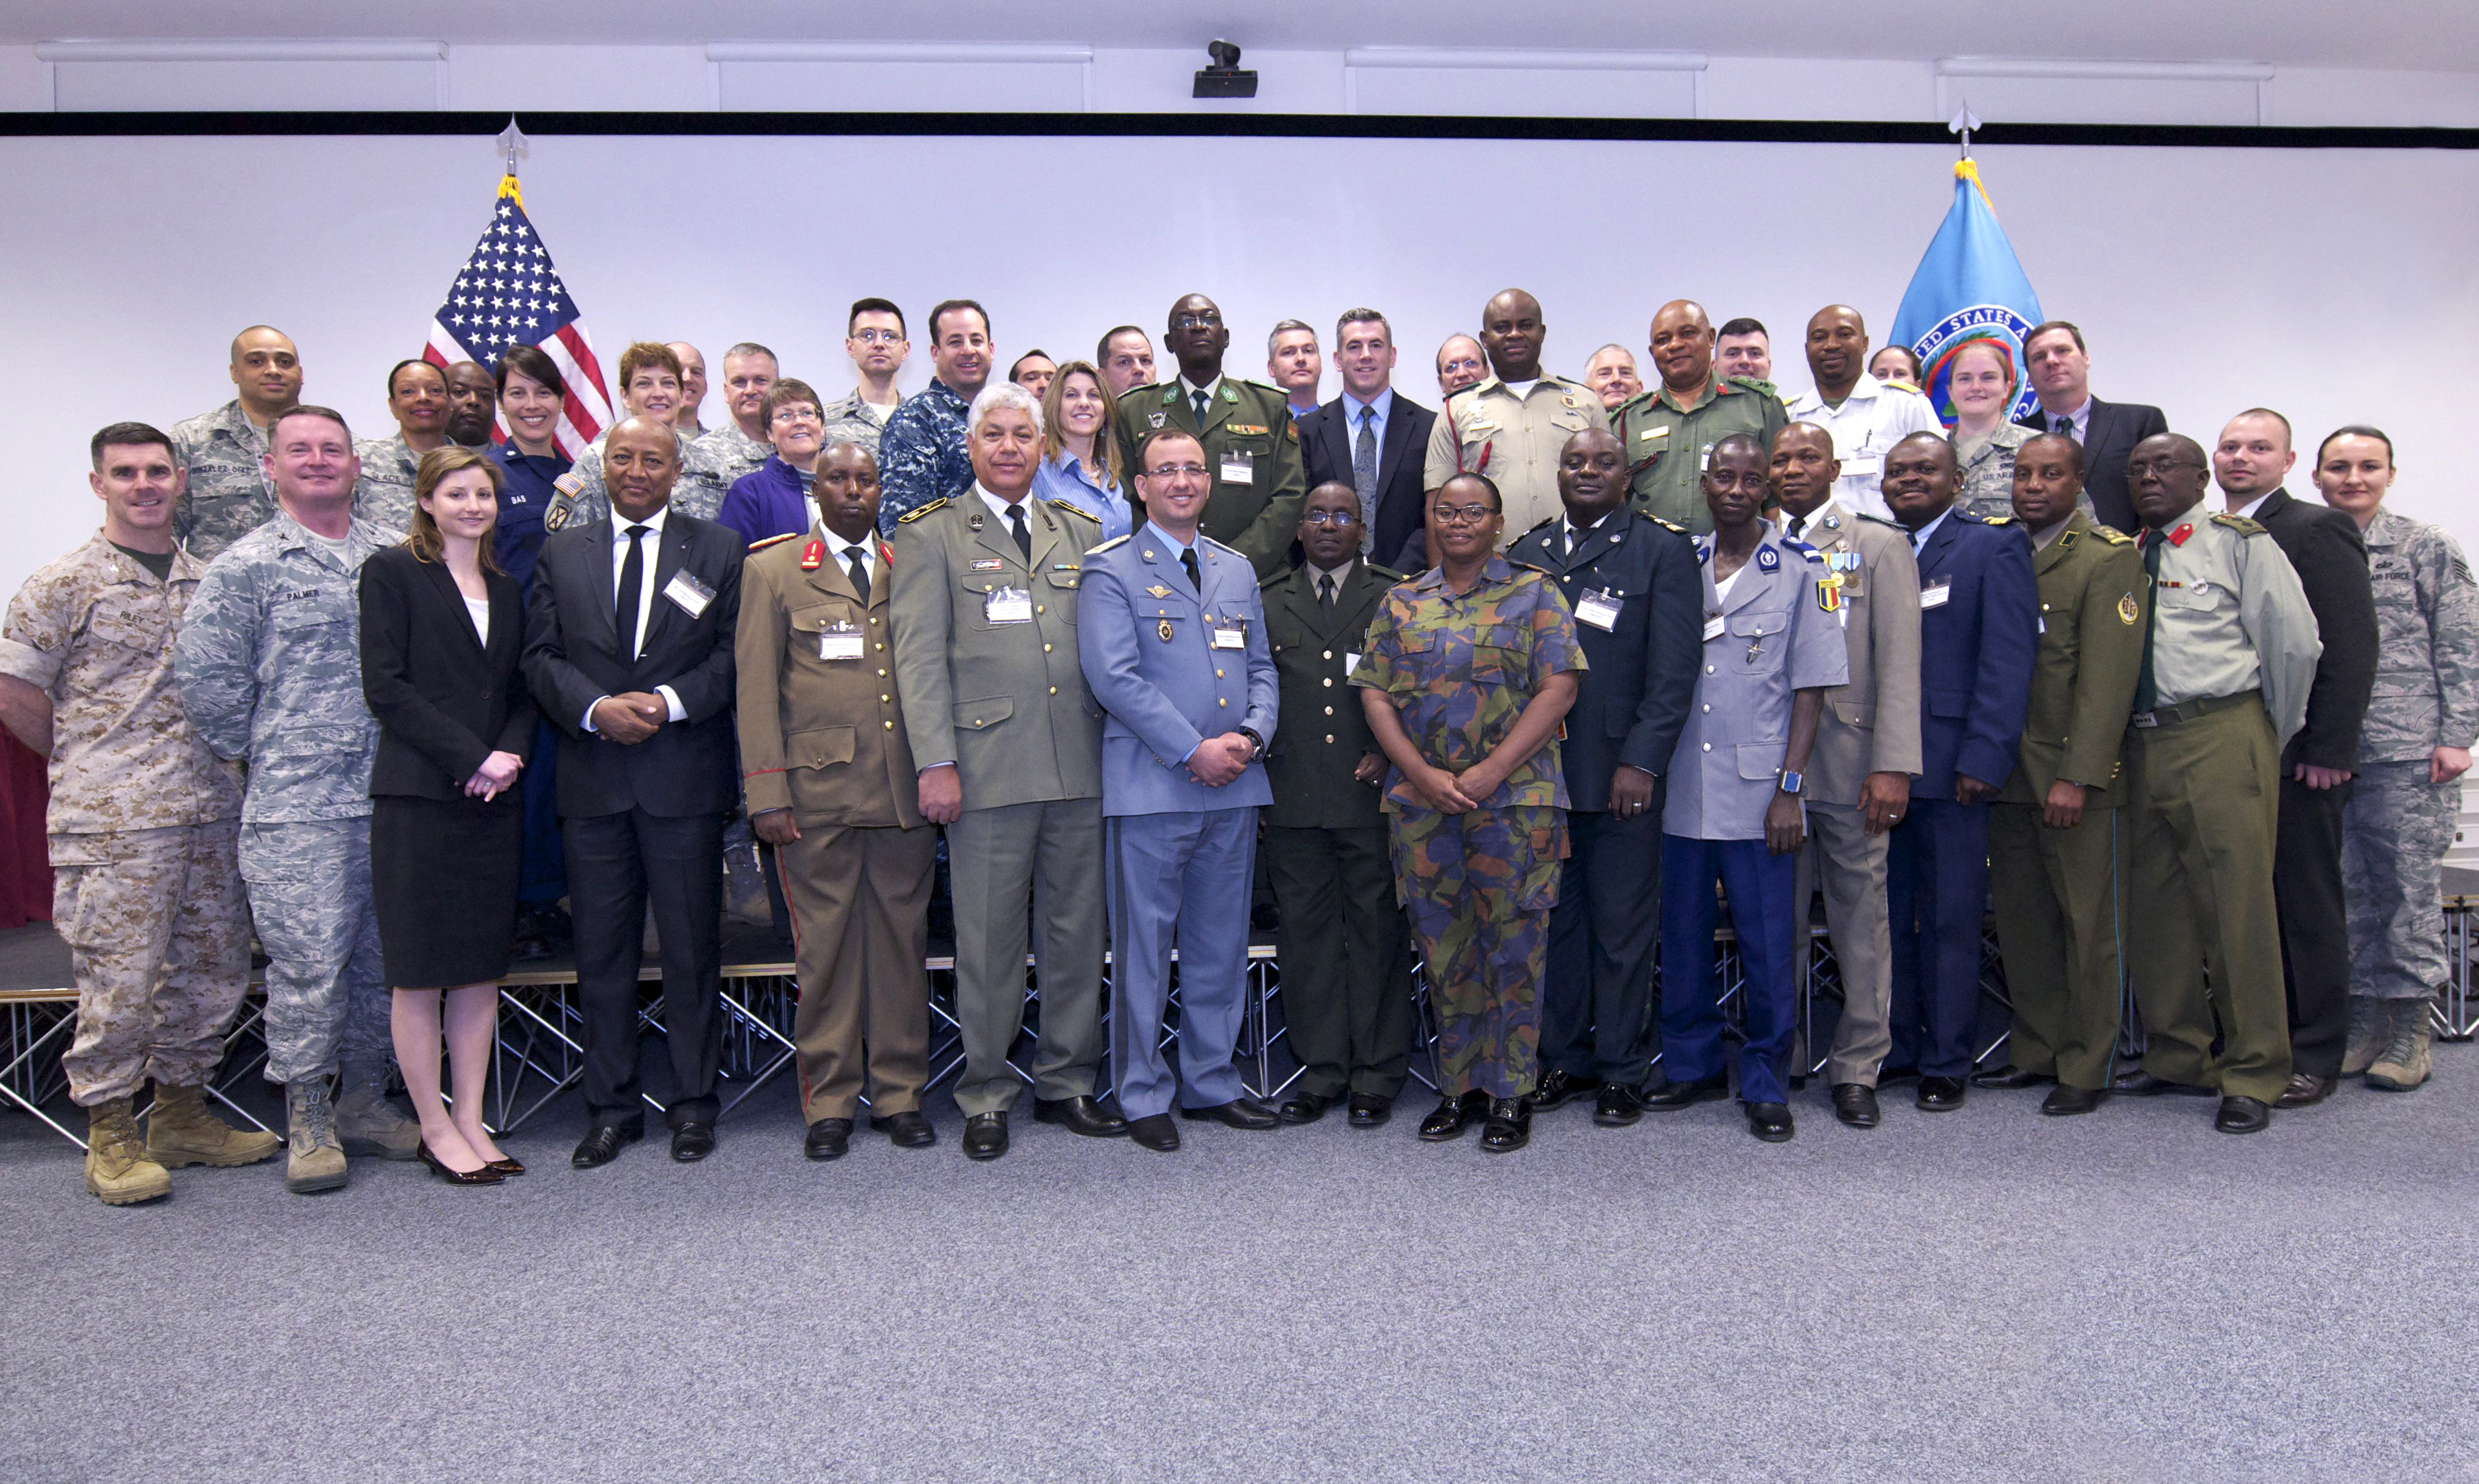 """The Rule of Law is our most important export."" – U.S. Marine Corps Lt. Gen. Steven Hummer, AFRICOM Dep. Cdr. for Military Operations.  Military lawyers from 17 African nations have joined U.S. counterparts to discuss a variety of legal topics during a forum hosted by U.S. Africa Command, Mar. 17-19, 2015, at the U.S. Army Garrison Stuttgart, Kelley Barracks. (U.S. Africa Command photo by Brenda Law/RELEASED)"